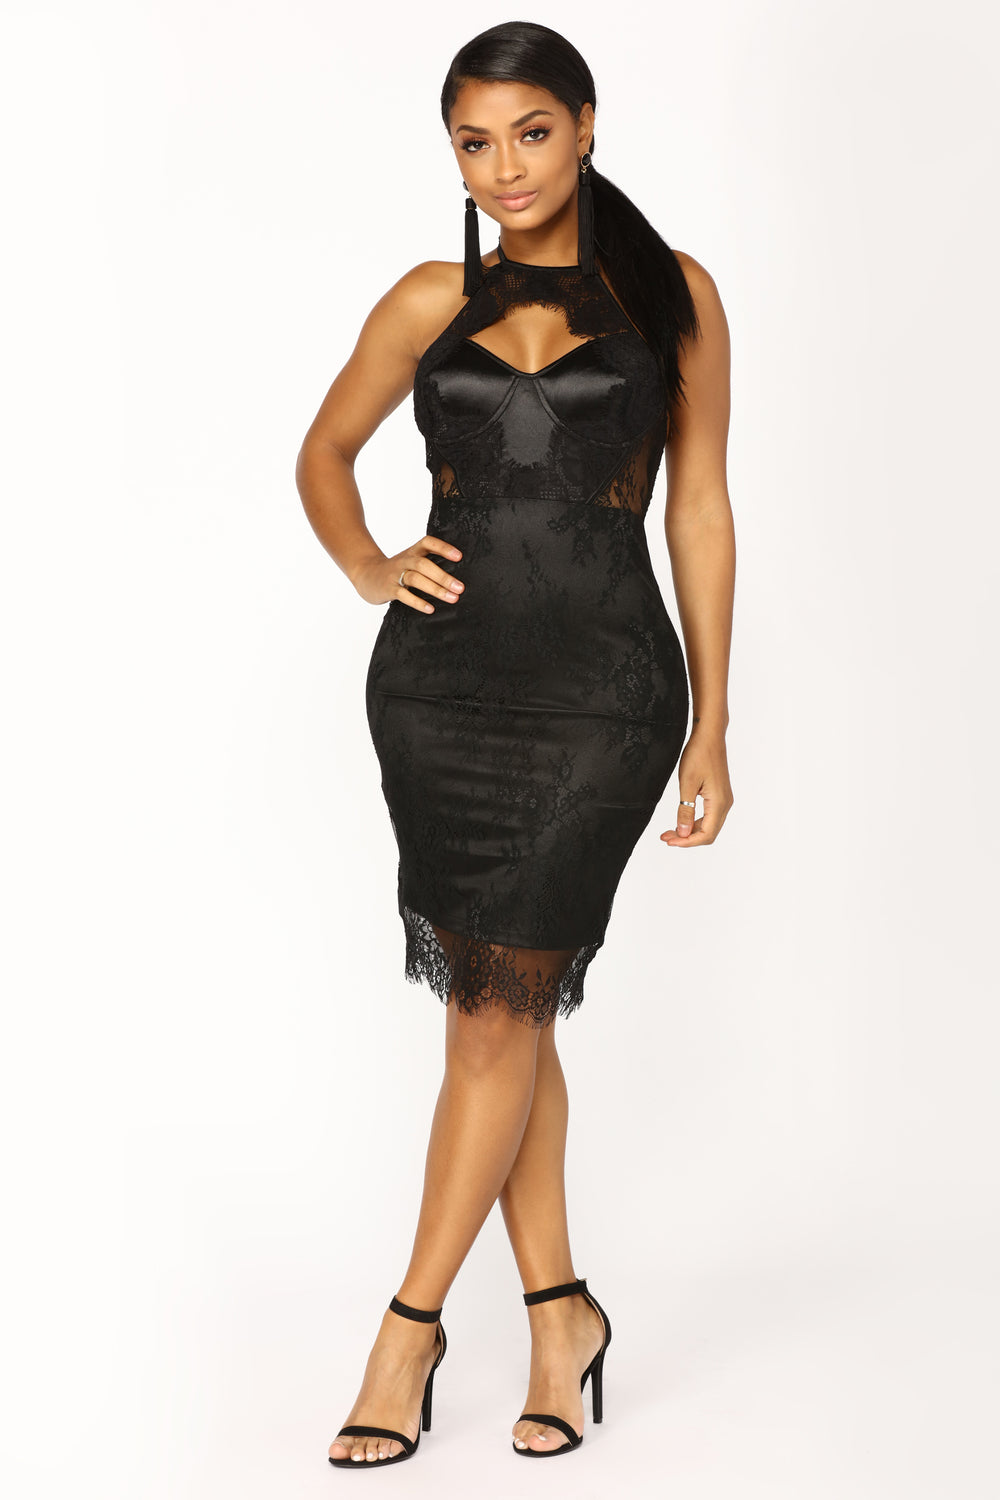 Without Warning Lace Dress - Black